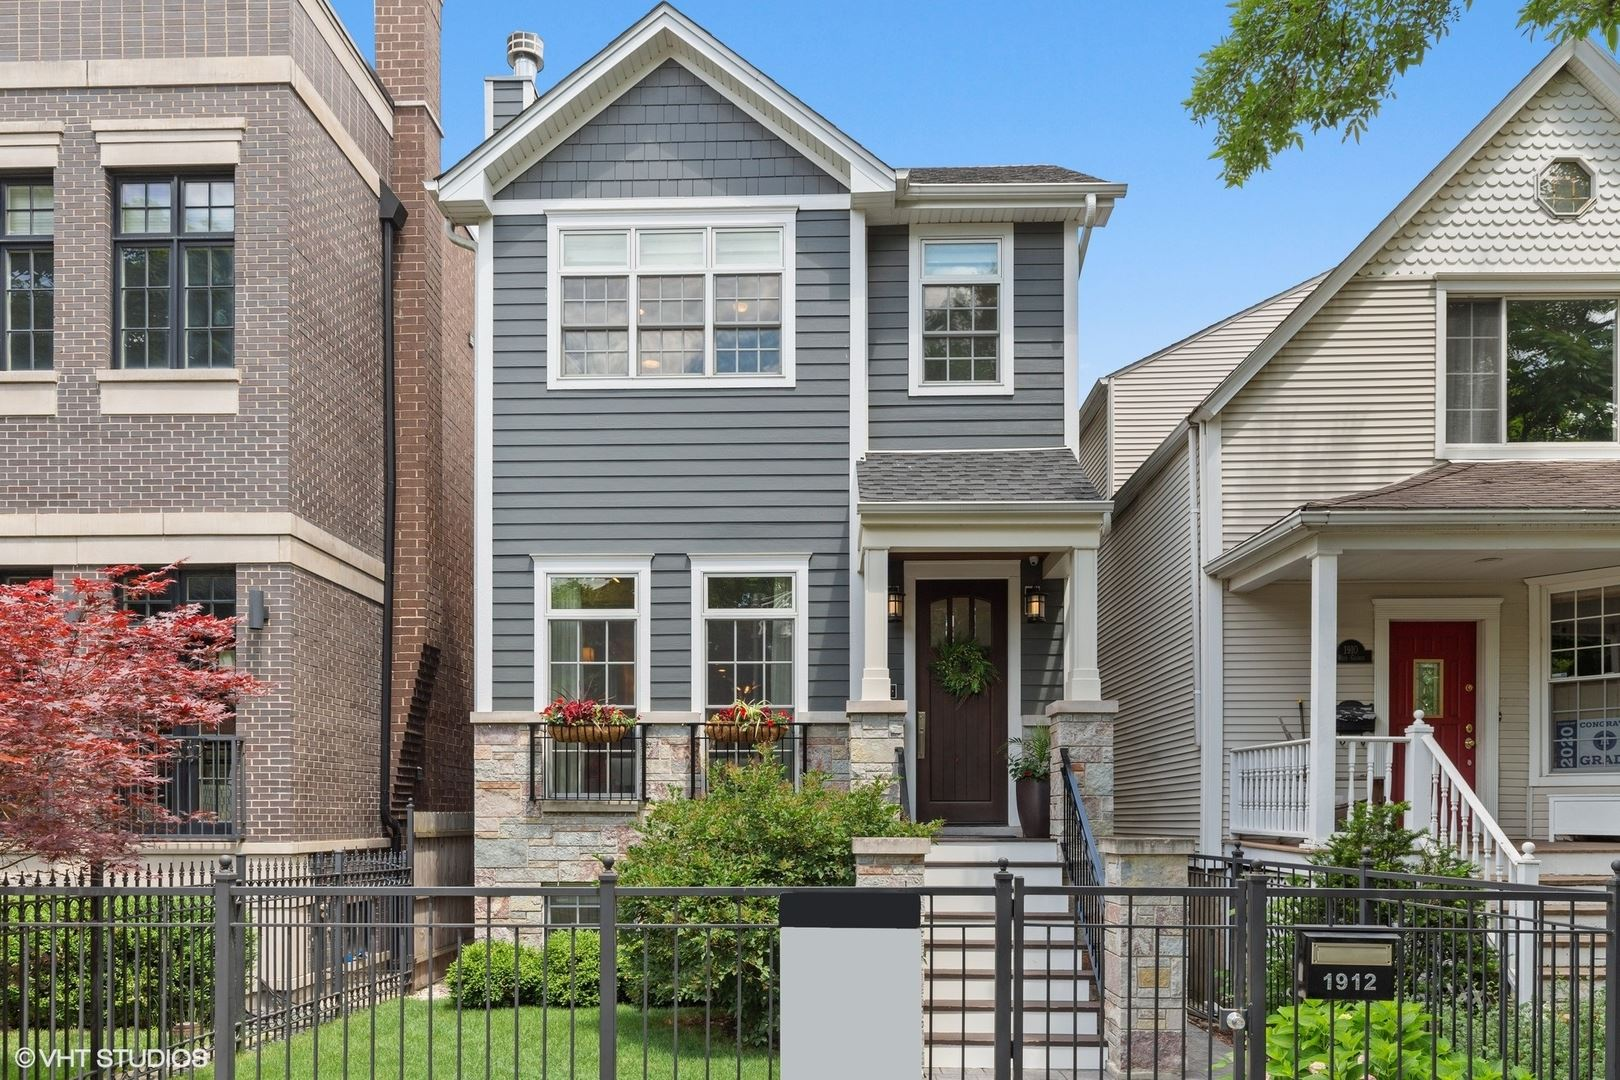 Photo for 1912 W George Street, Chicago, IL 60657 (MLS # 10803323)